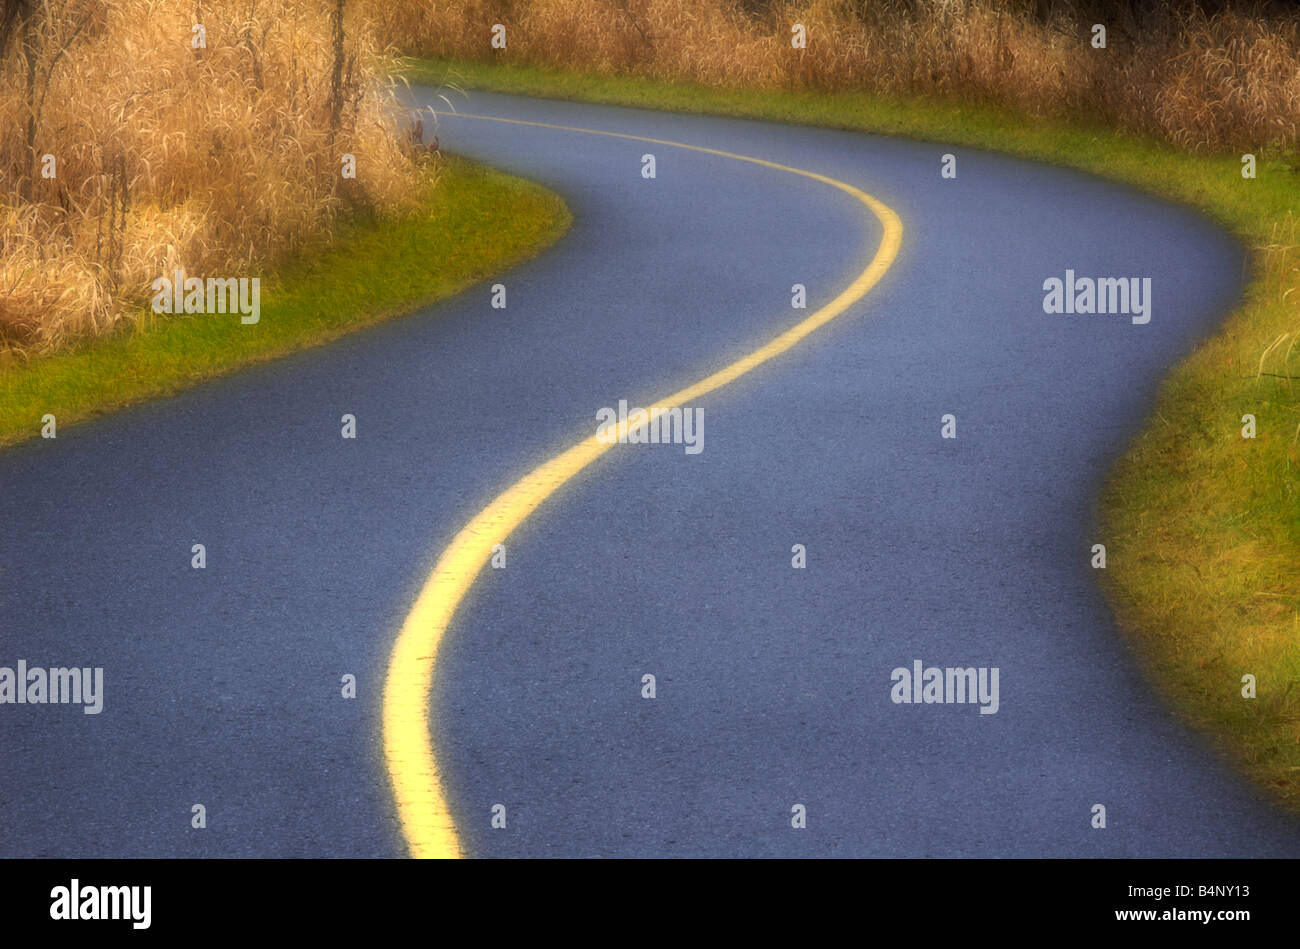 Small paved and curvy road used as a bike trail in a park - Stock Image